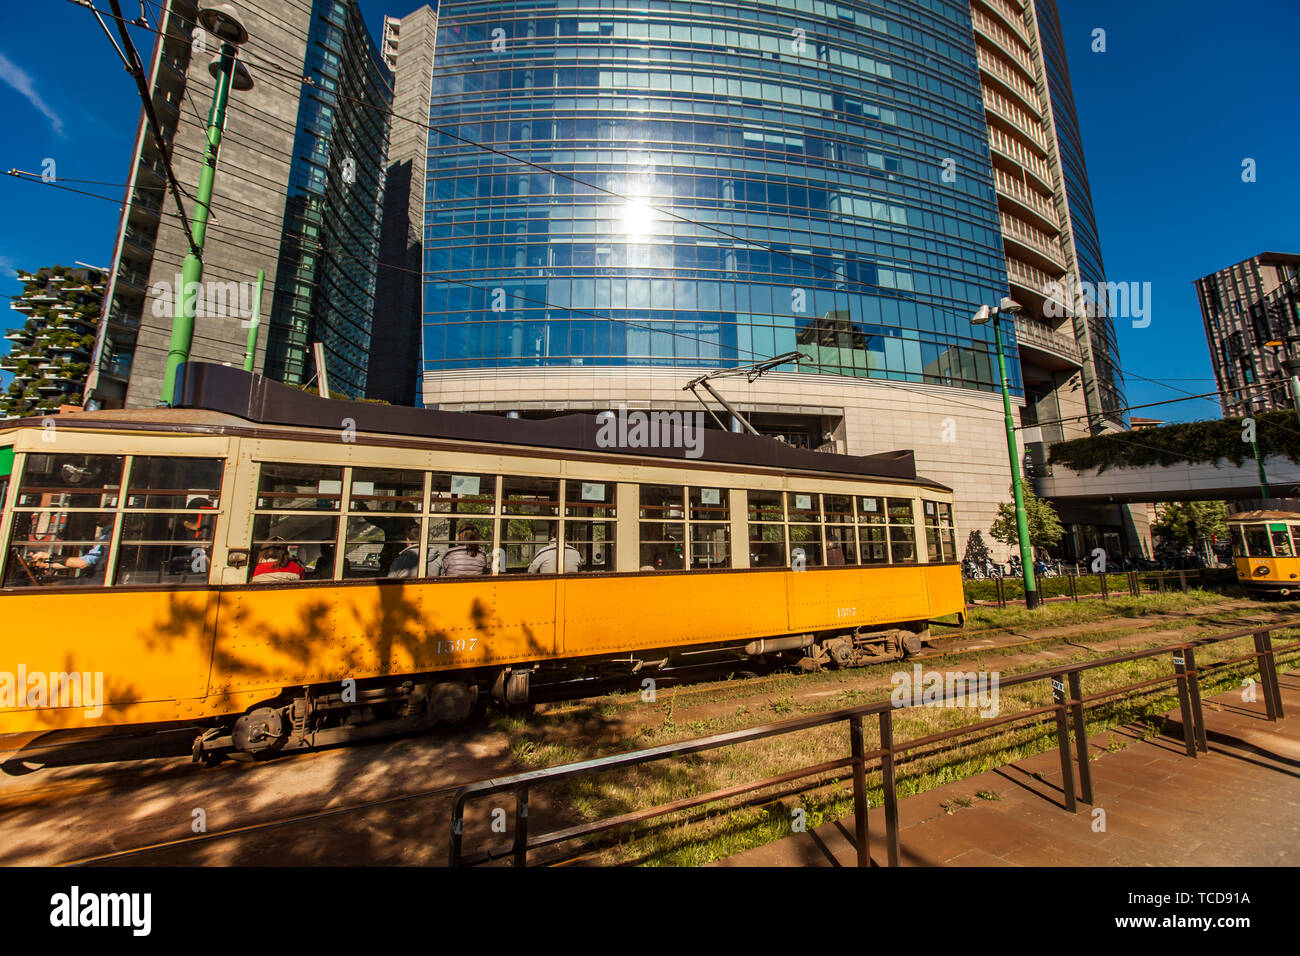 MILAN, ITALY - APRIL 28, 2017: Vintage tram ATM Class 1500 on the street of Milan, near Porta Nuova in Italy. It is a series of tram vehicles construc - Stock Image